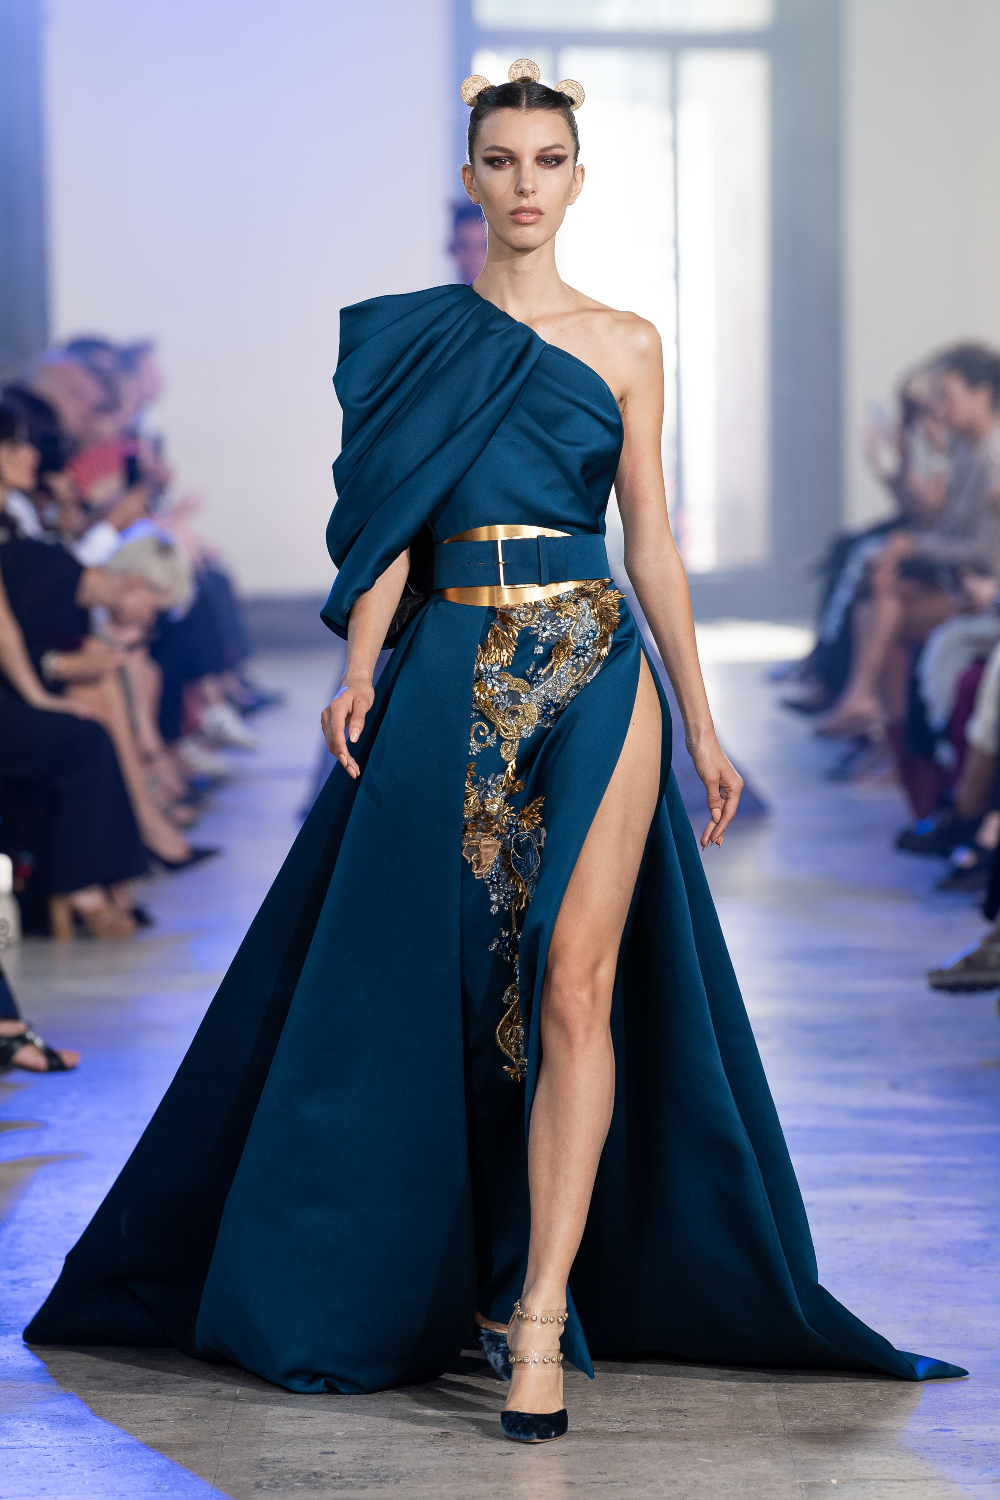 Elie Saab Fall 2019 Couture Collection Vogue Elie Saab Couture Fashion Couture Dresses